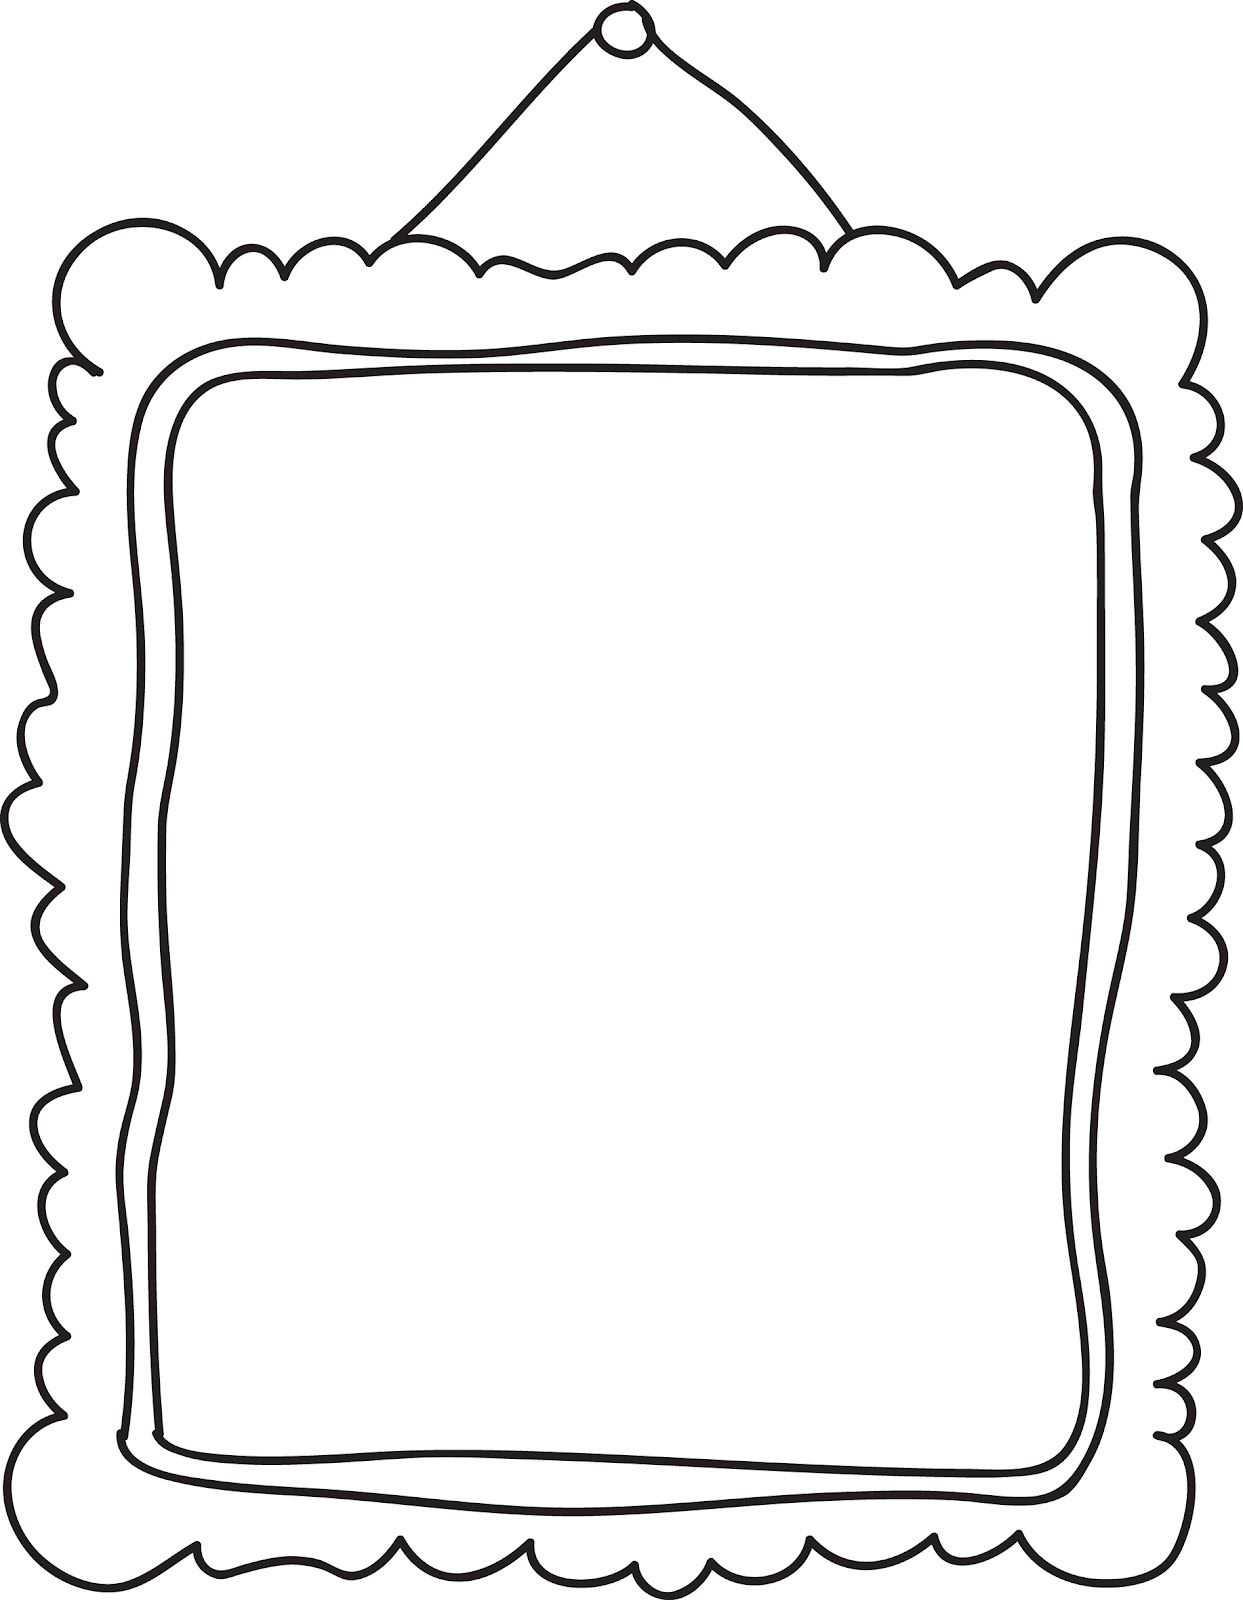 digital frames vector clipart black and white google search [ 1243 x 1600 Pixel ]